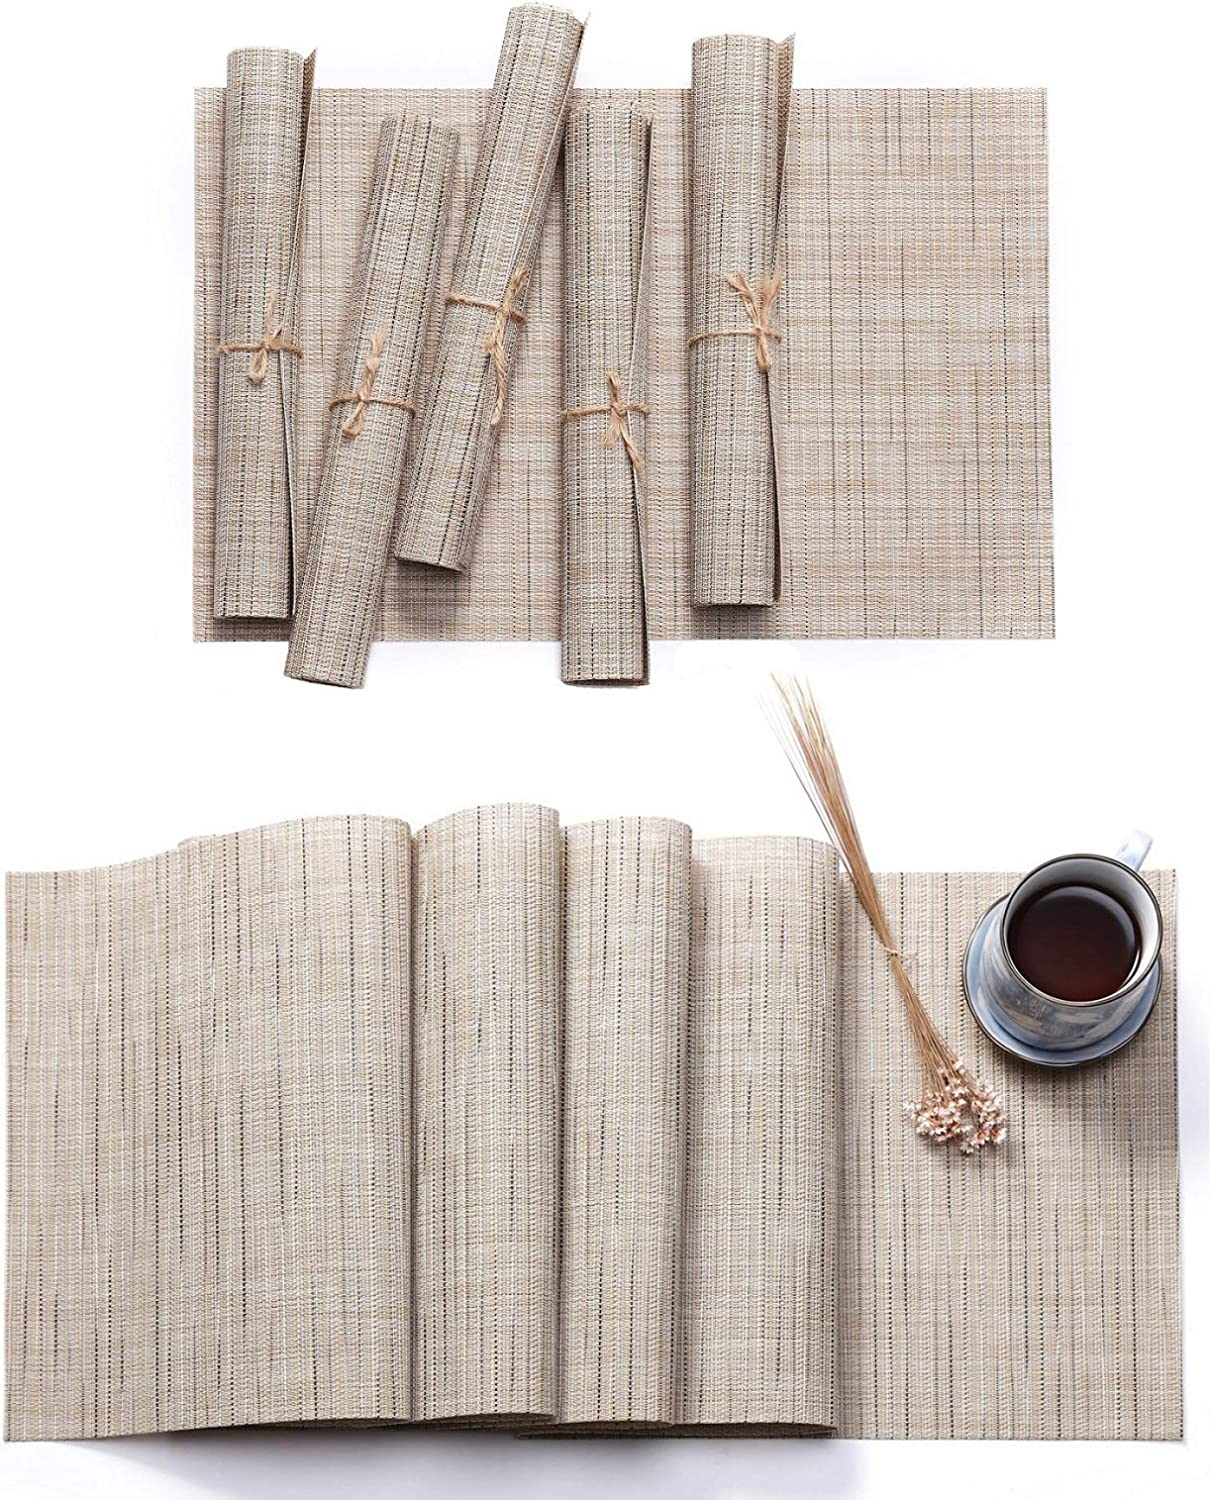 1XTable Runner 6Pcs Placemats beige HYSENM Solid Color PVC Vinyl Table Placemats and Runner Set Bamboo Pattern Heat Resistant Table Mats